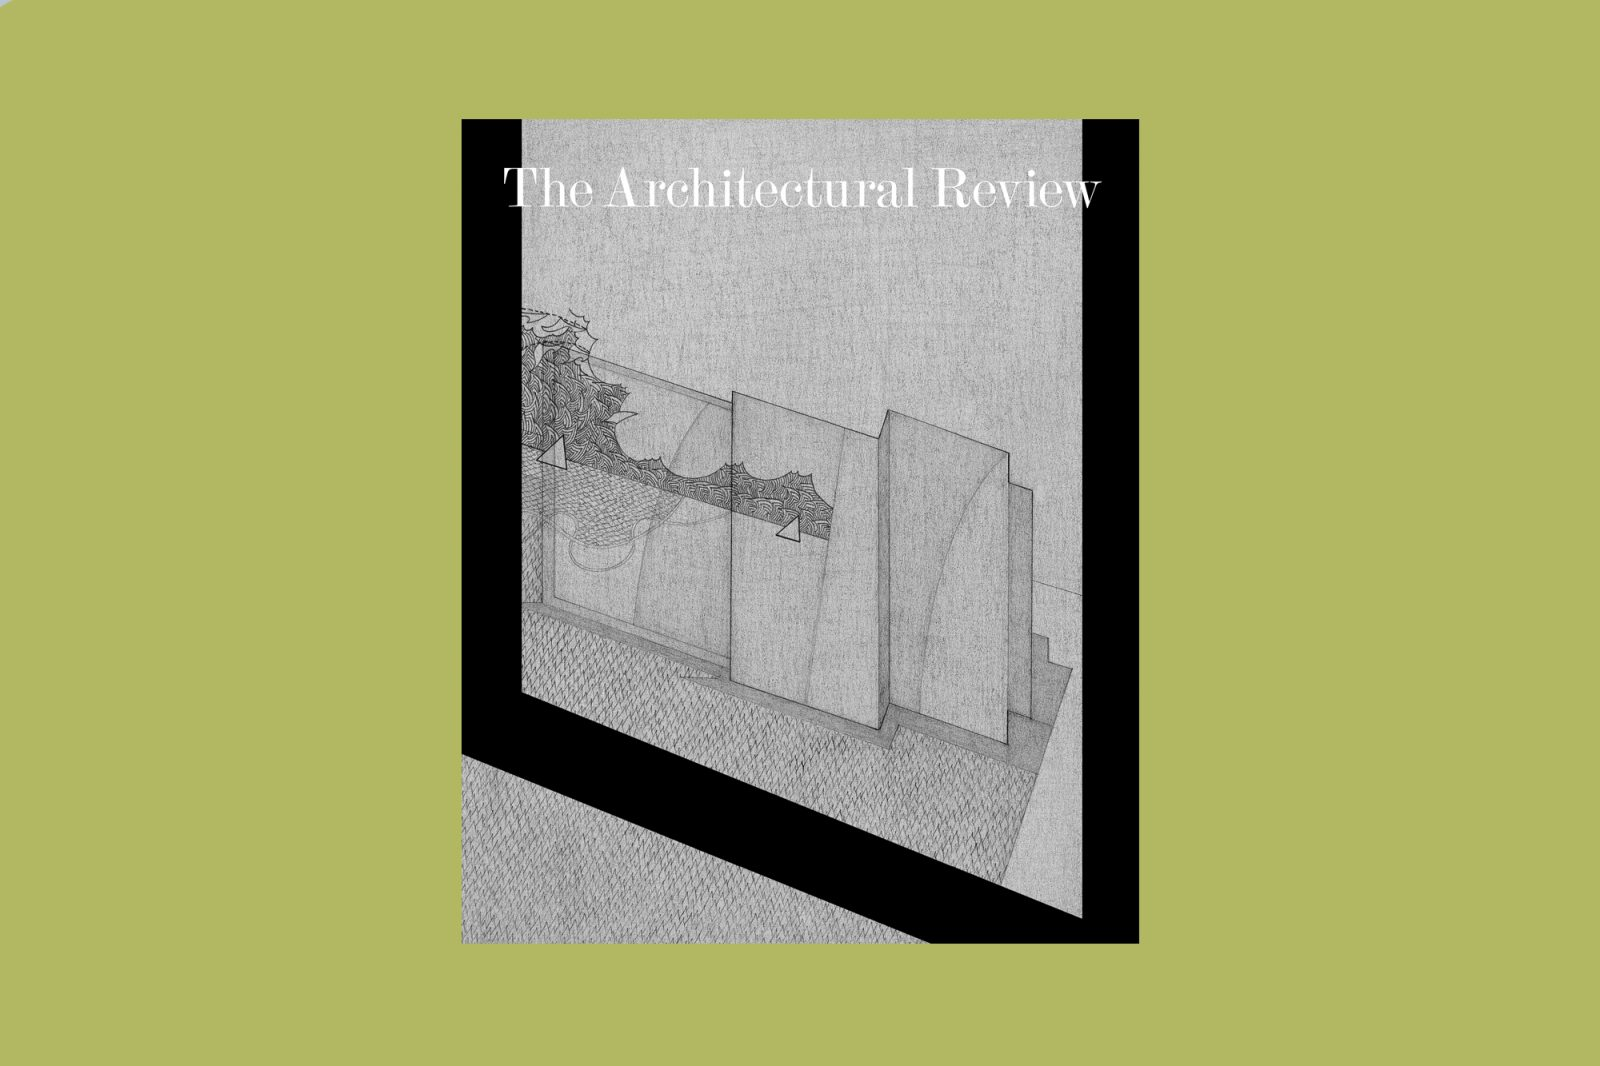 AR February 2021 on Gardens - Architectural Review